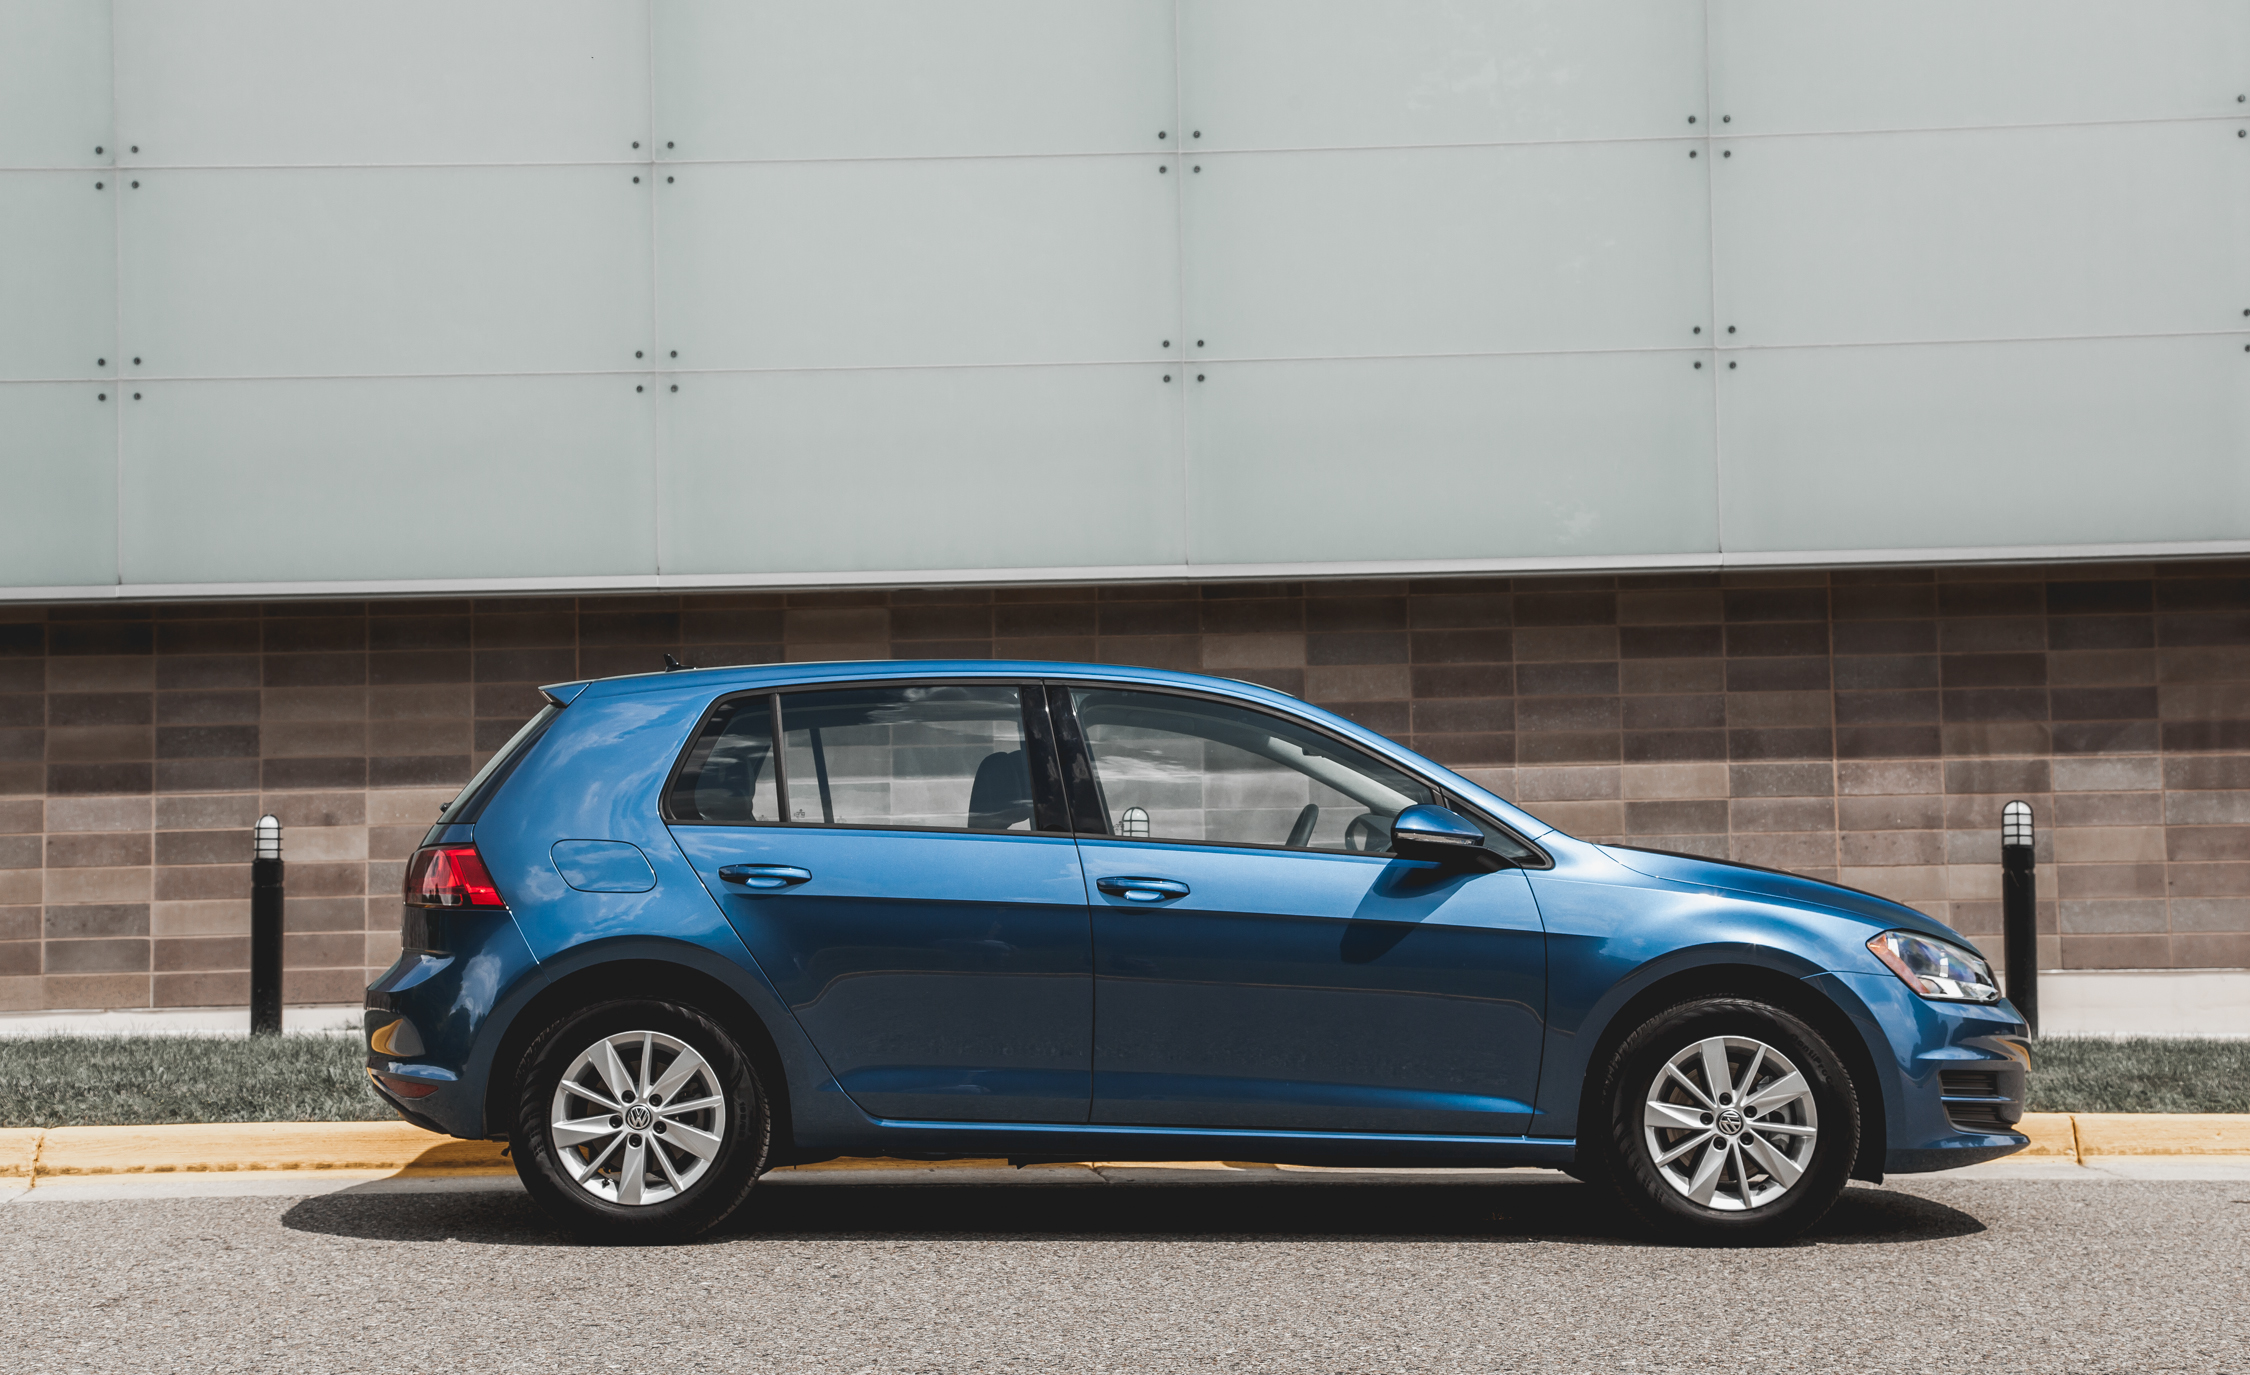 2015 Volkswagen Golf TSI Exterior Side